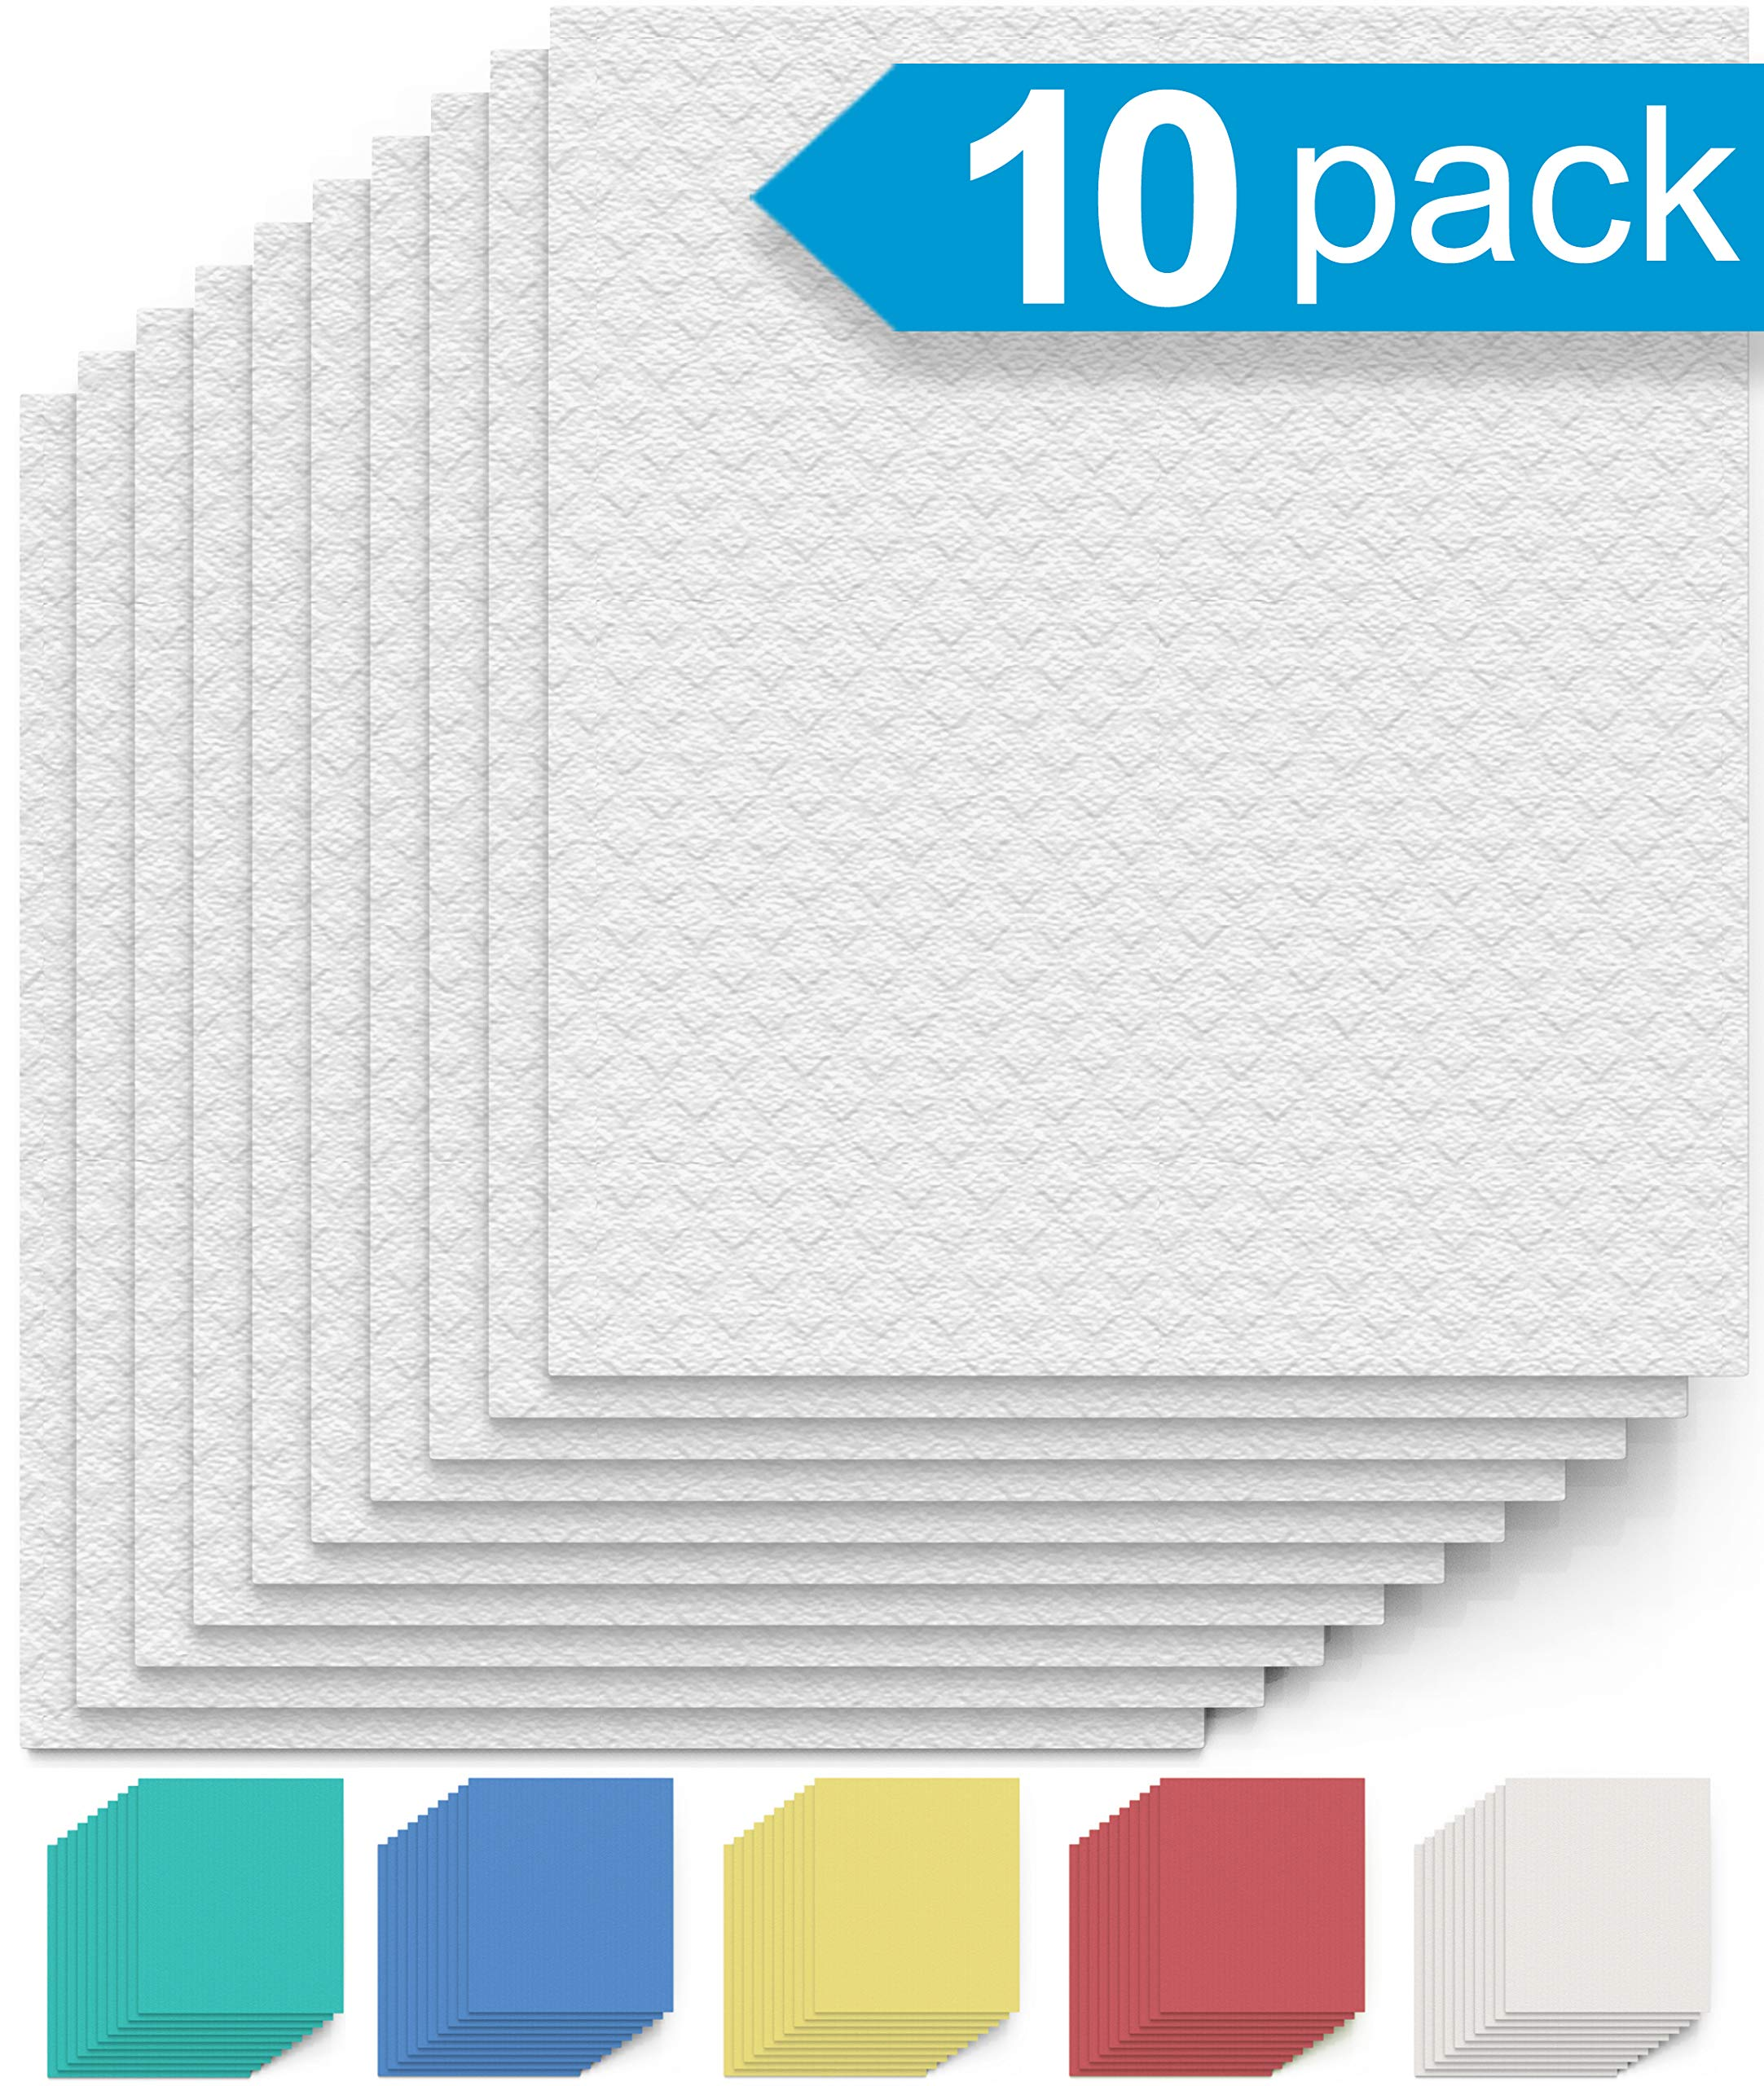 Swedish Dishcloth Cellulose Sponge Cloths – Bulk 10 Pack of Eco-Friendly No Odor Reusable Cleaning Cloths for Kitchen – Absorbent Dish Cloth Hand Towel (10 Dishcloths – White)